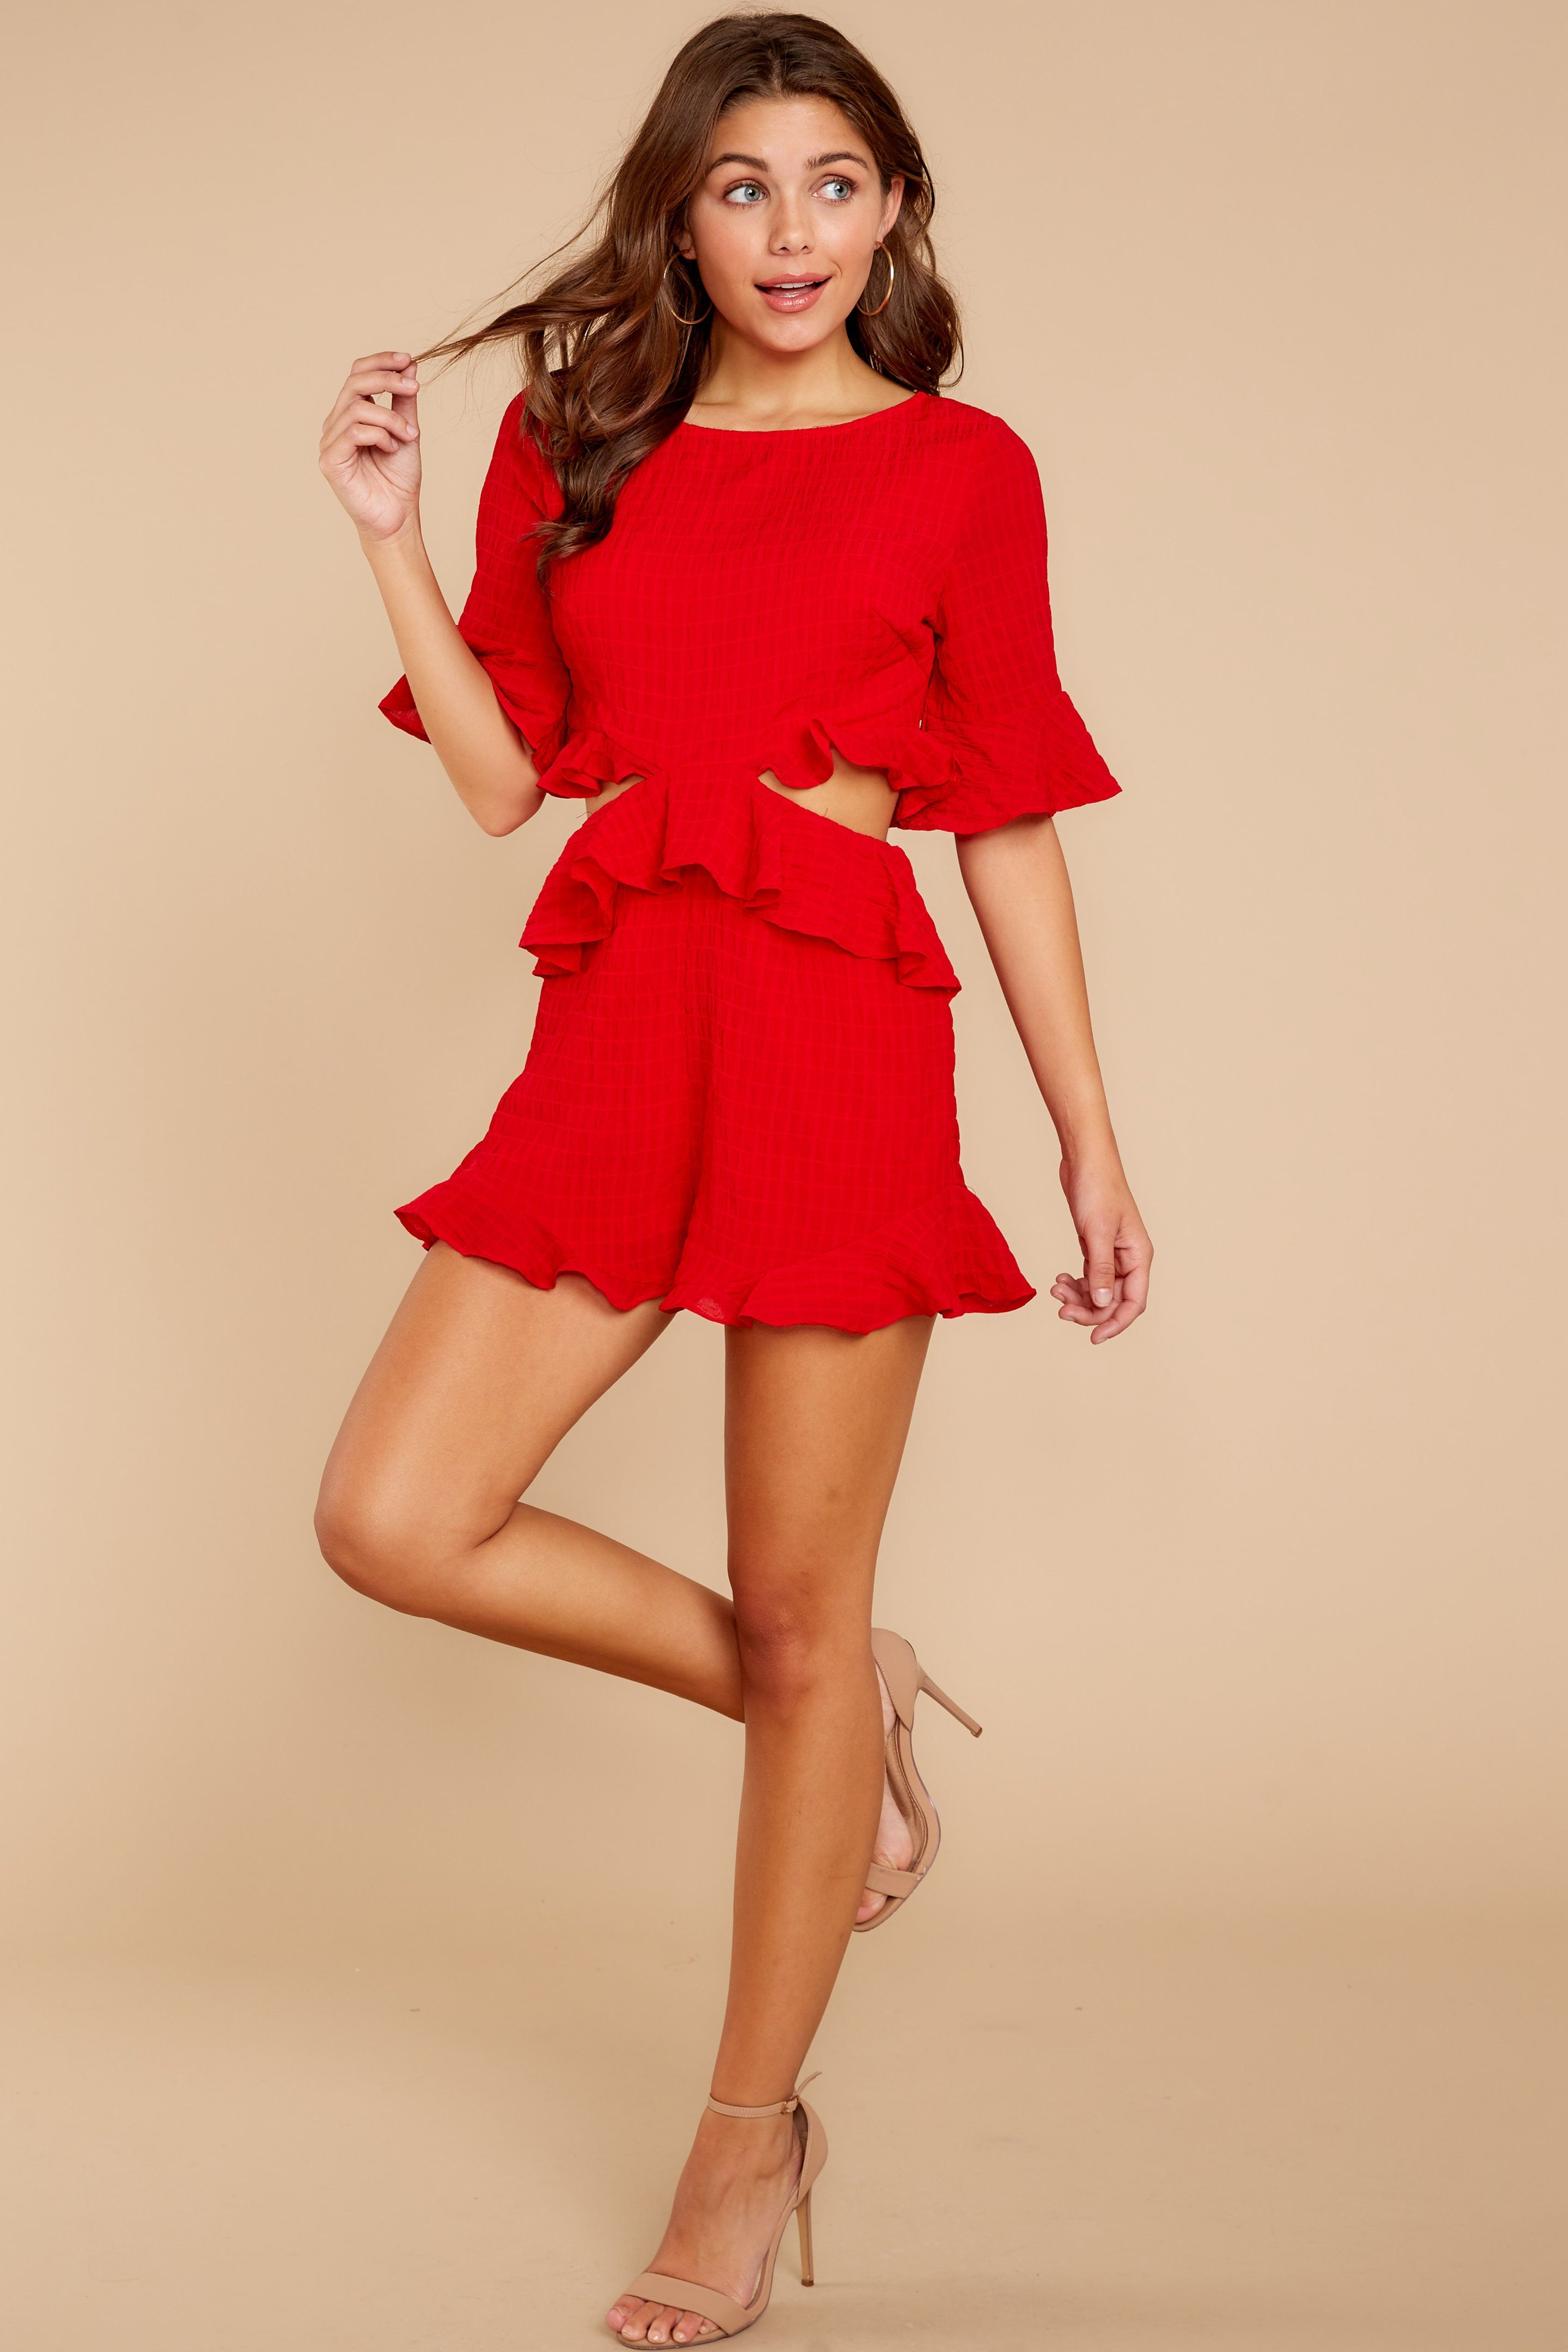 fbf4bef9ef1 Flirty Red Romper - Trendy Short Ruffled Romper - Playsuit -  48.00 – Red  Dress Boutique